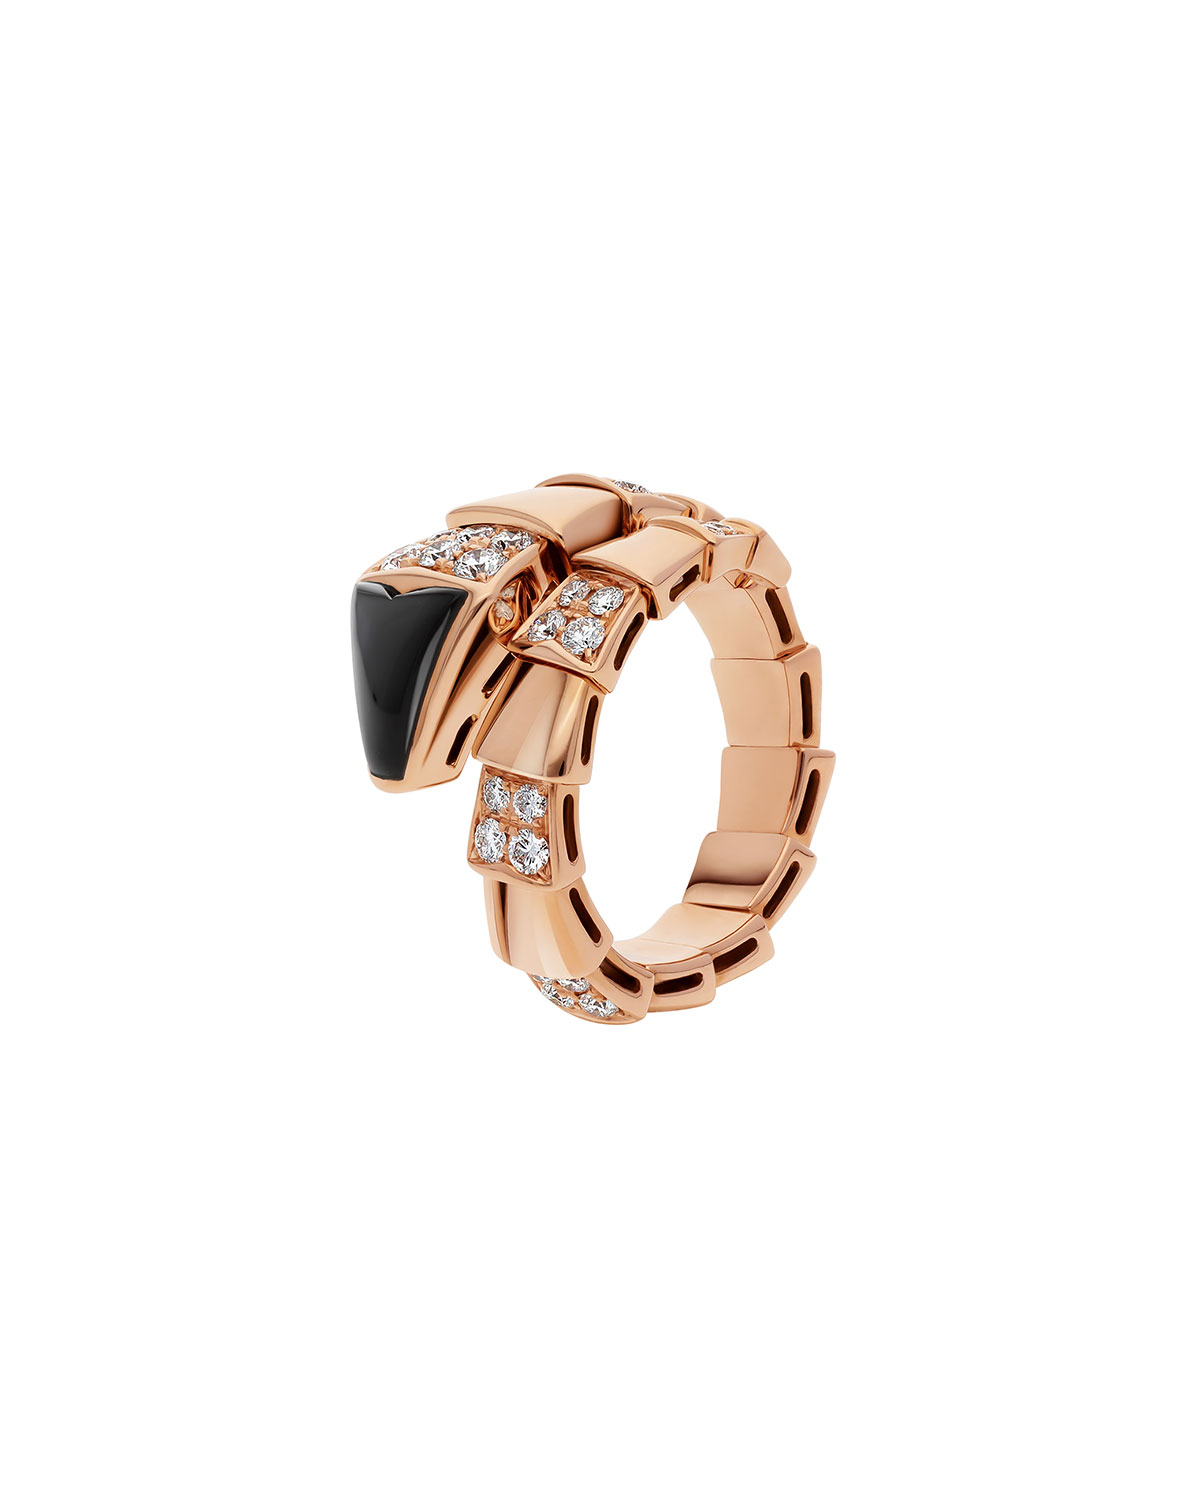 Serpenti Ring in 18k Rose Gold and Black Onyx